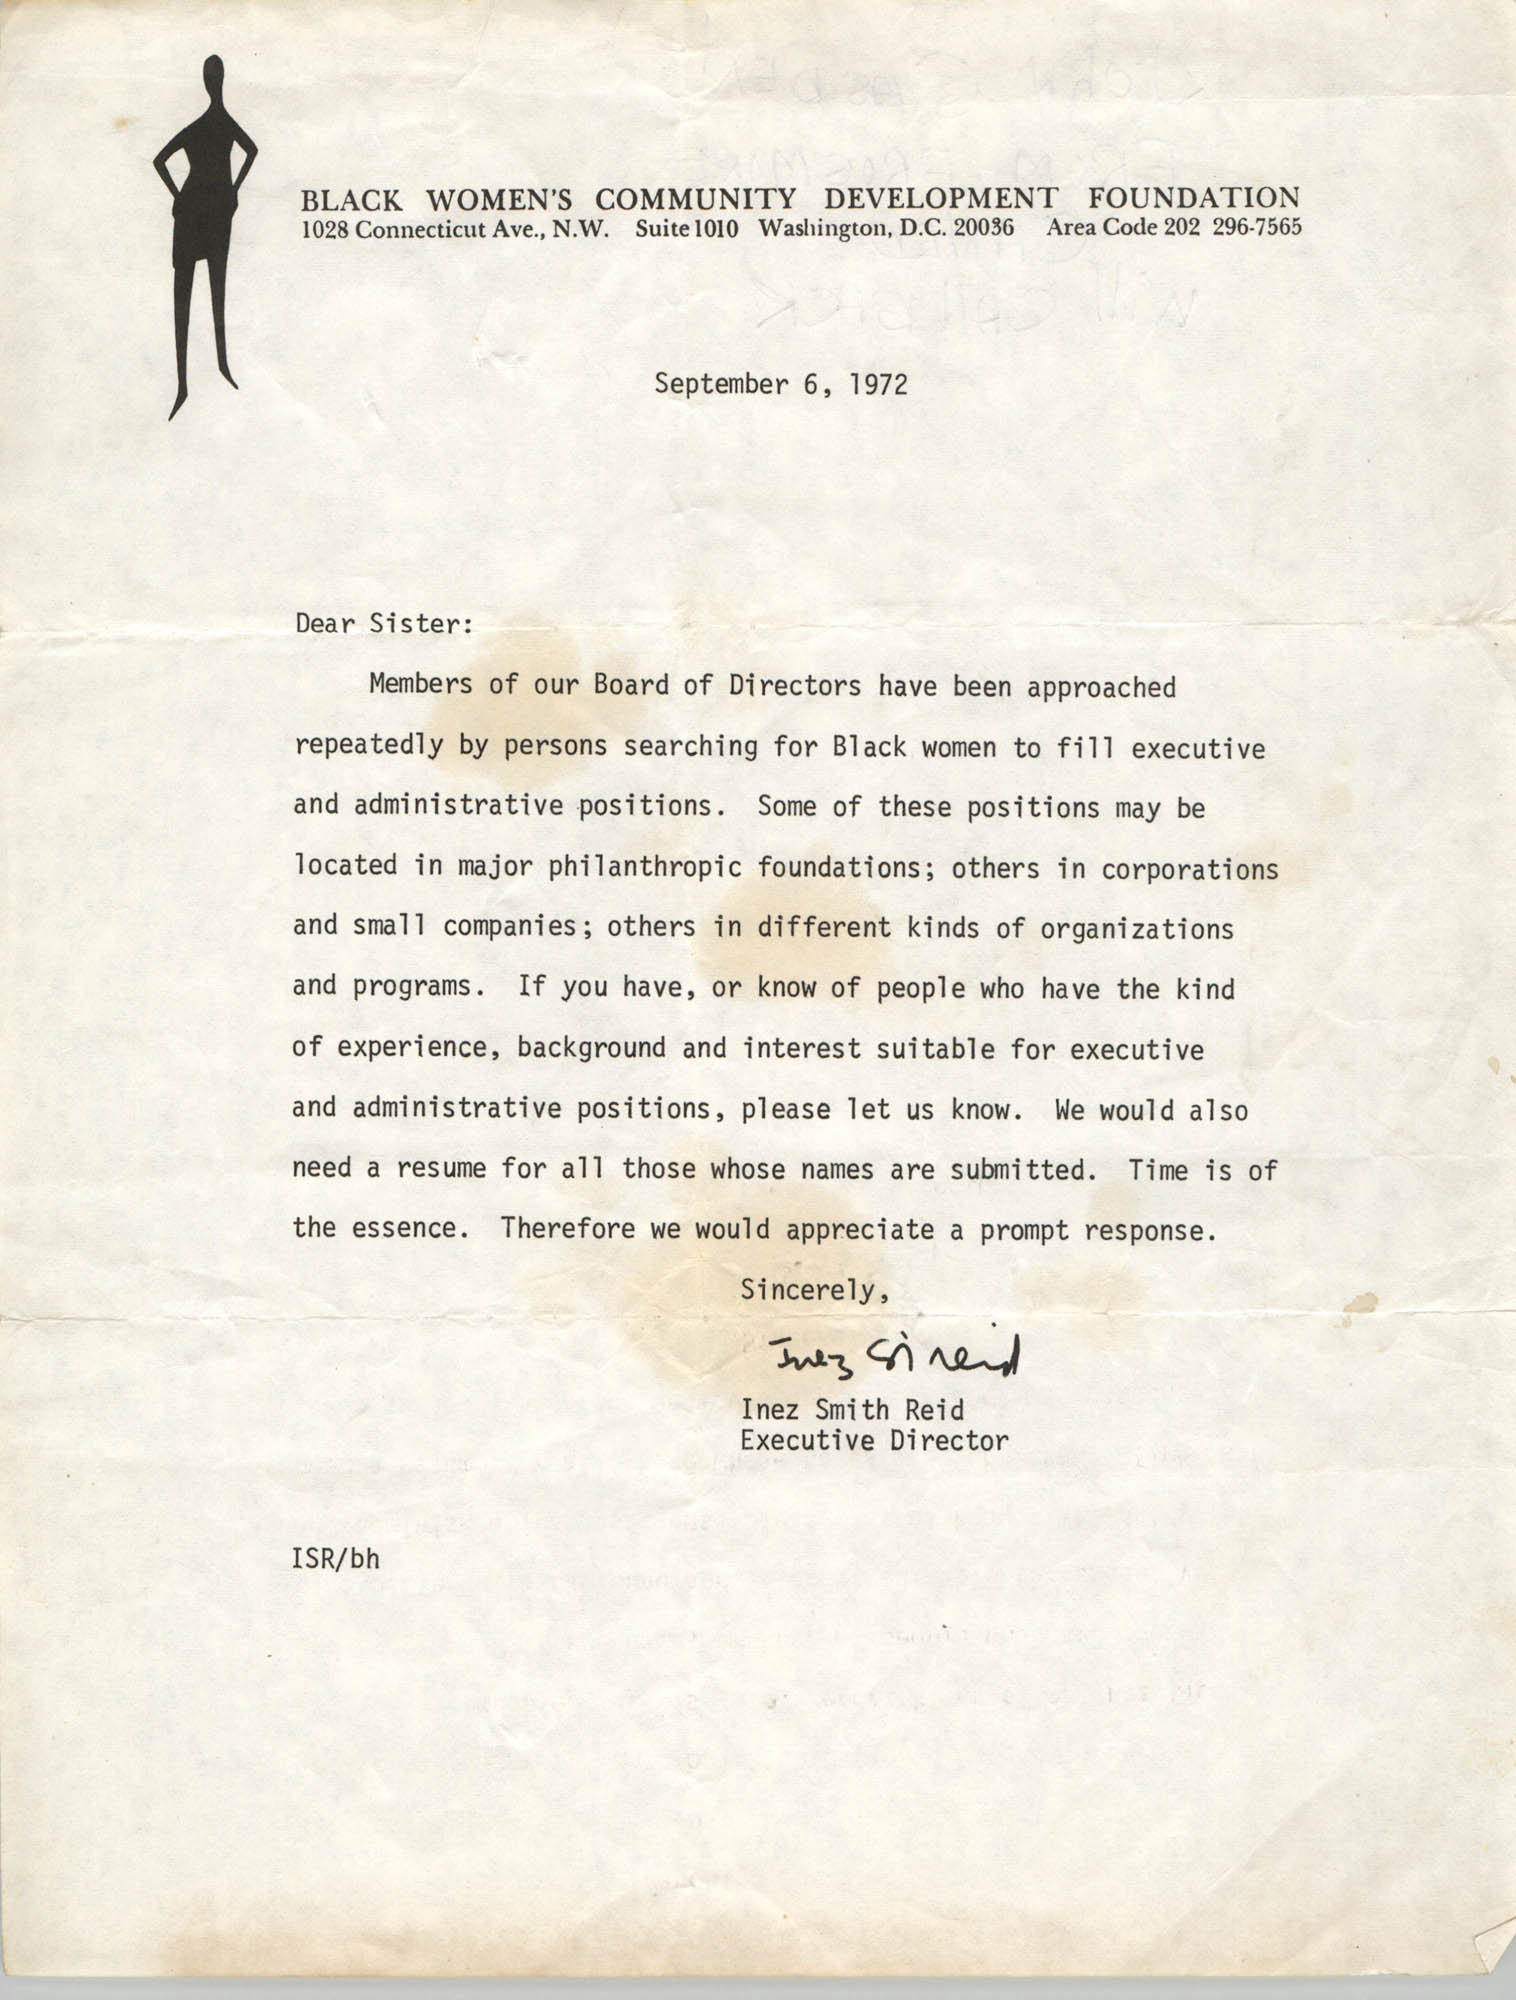 Letter from Inez Smith Reid to Black Women's Community Development Foundation Members, September 6, 1972